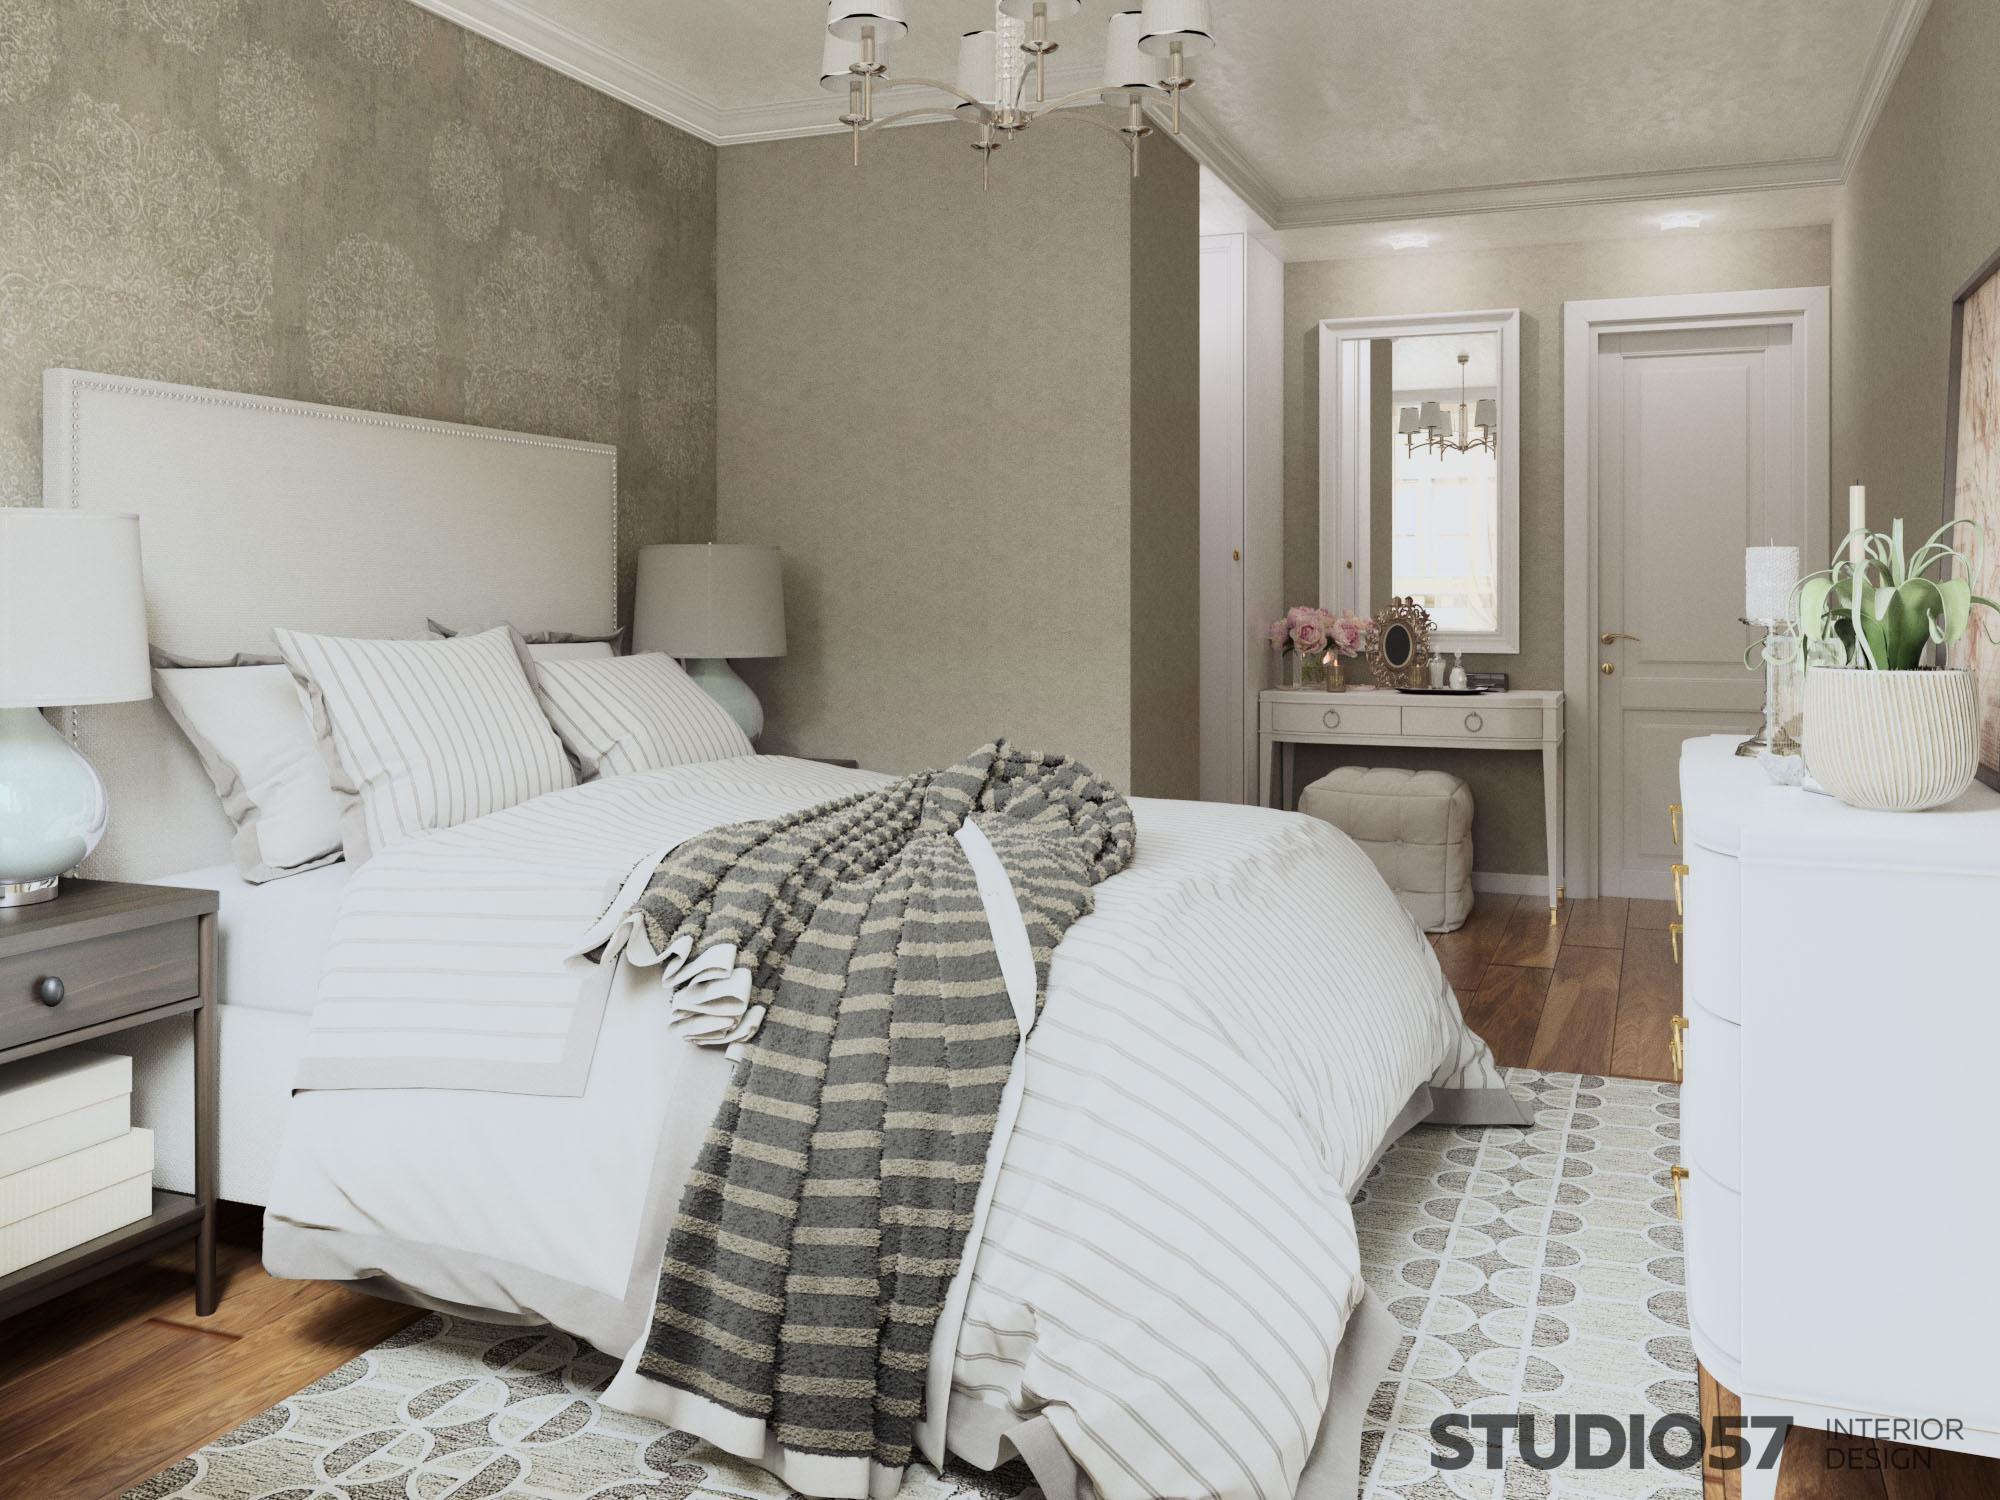 Bedroom style modern classic photo